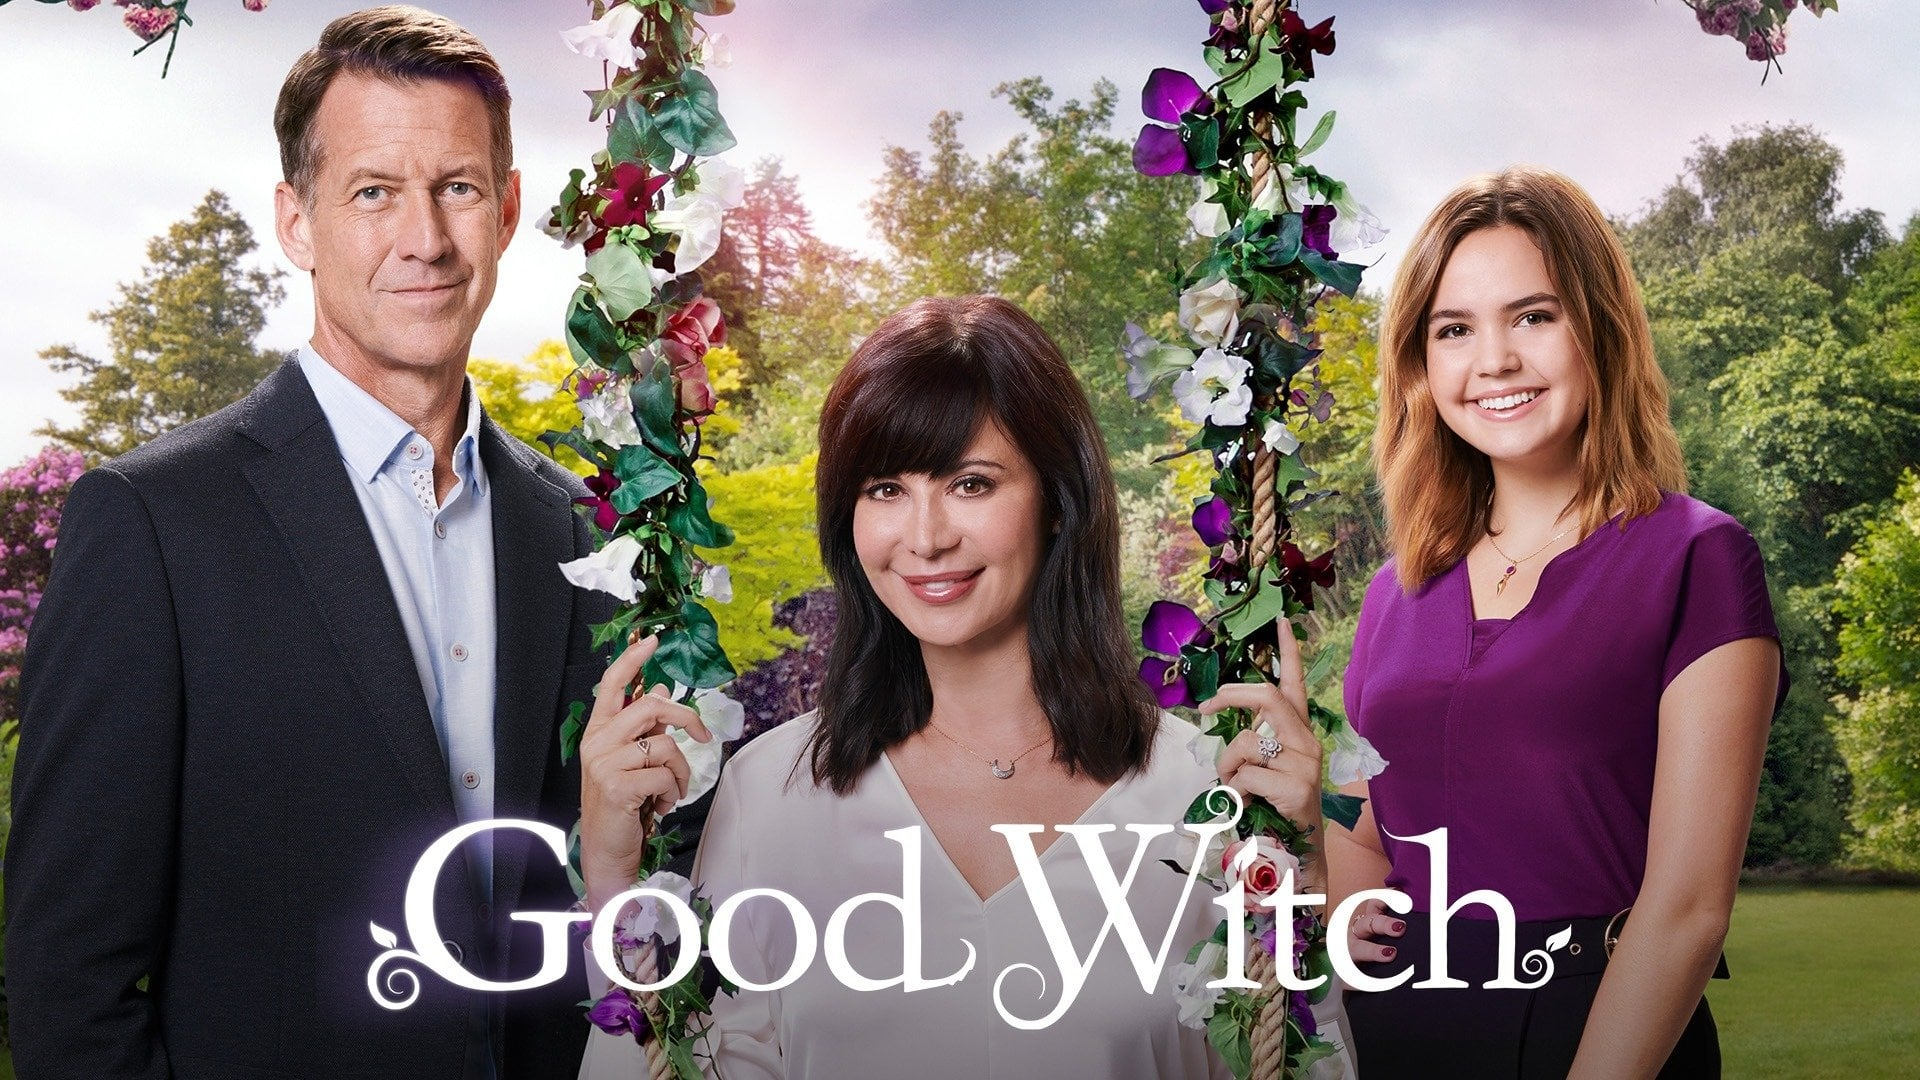 Seventh season Good Witch to premiere in March